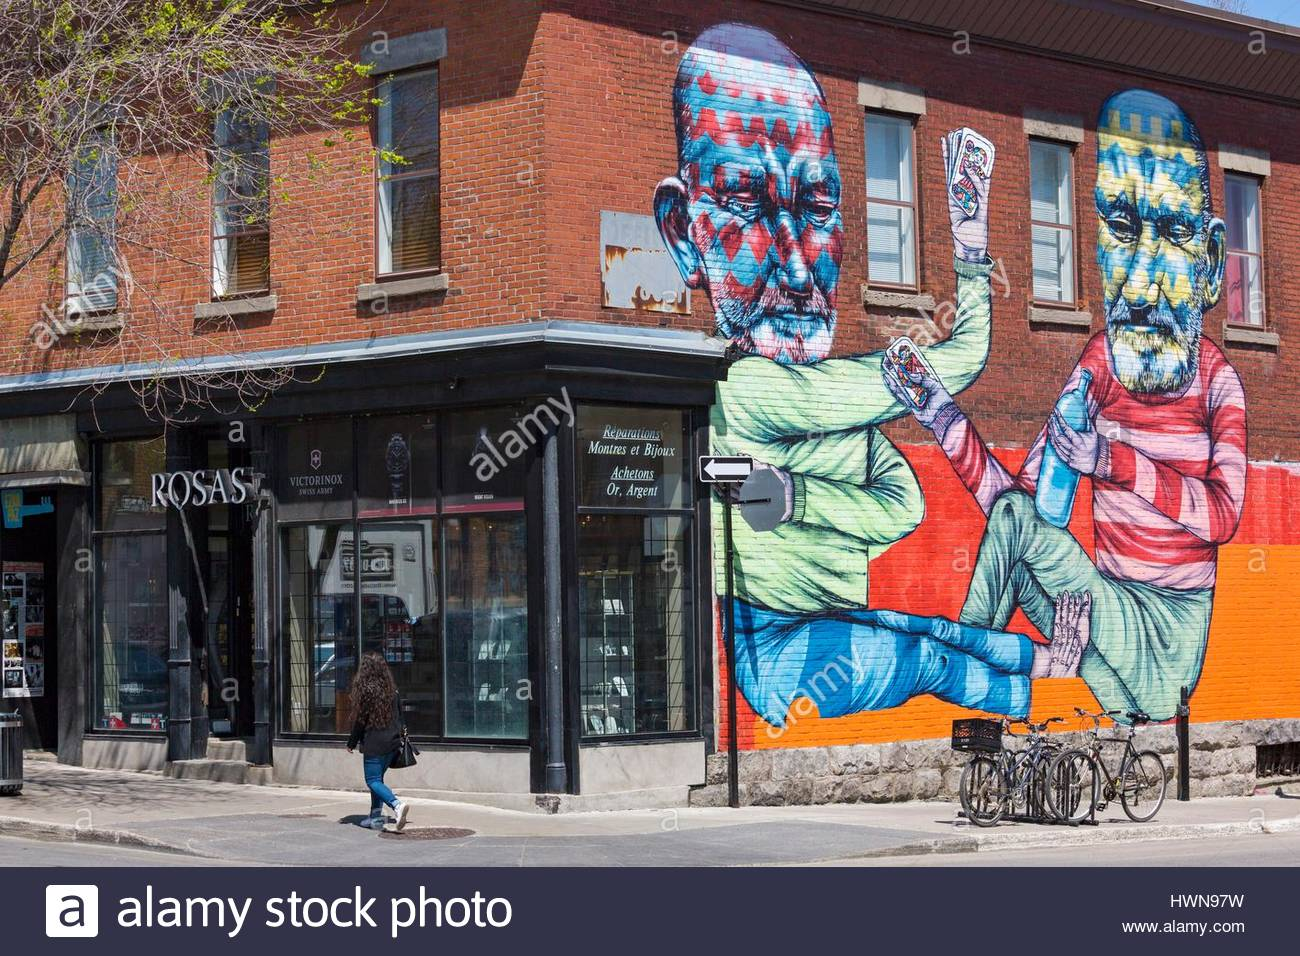 Canada, Province of Quebec, Montreal Mural by Other (AKA Troy Lovegates) on Napoleon Street for Mural Festival 2013 - Stock Image